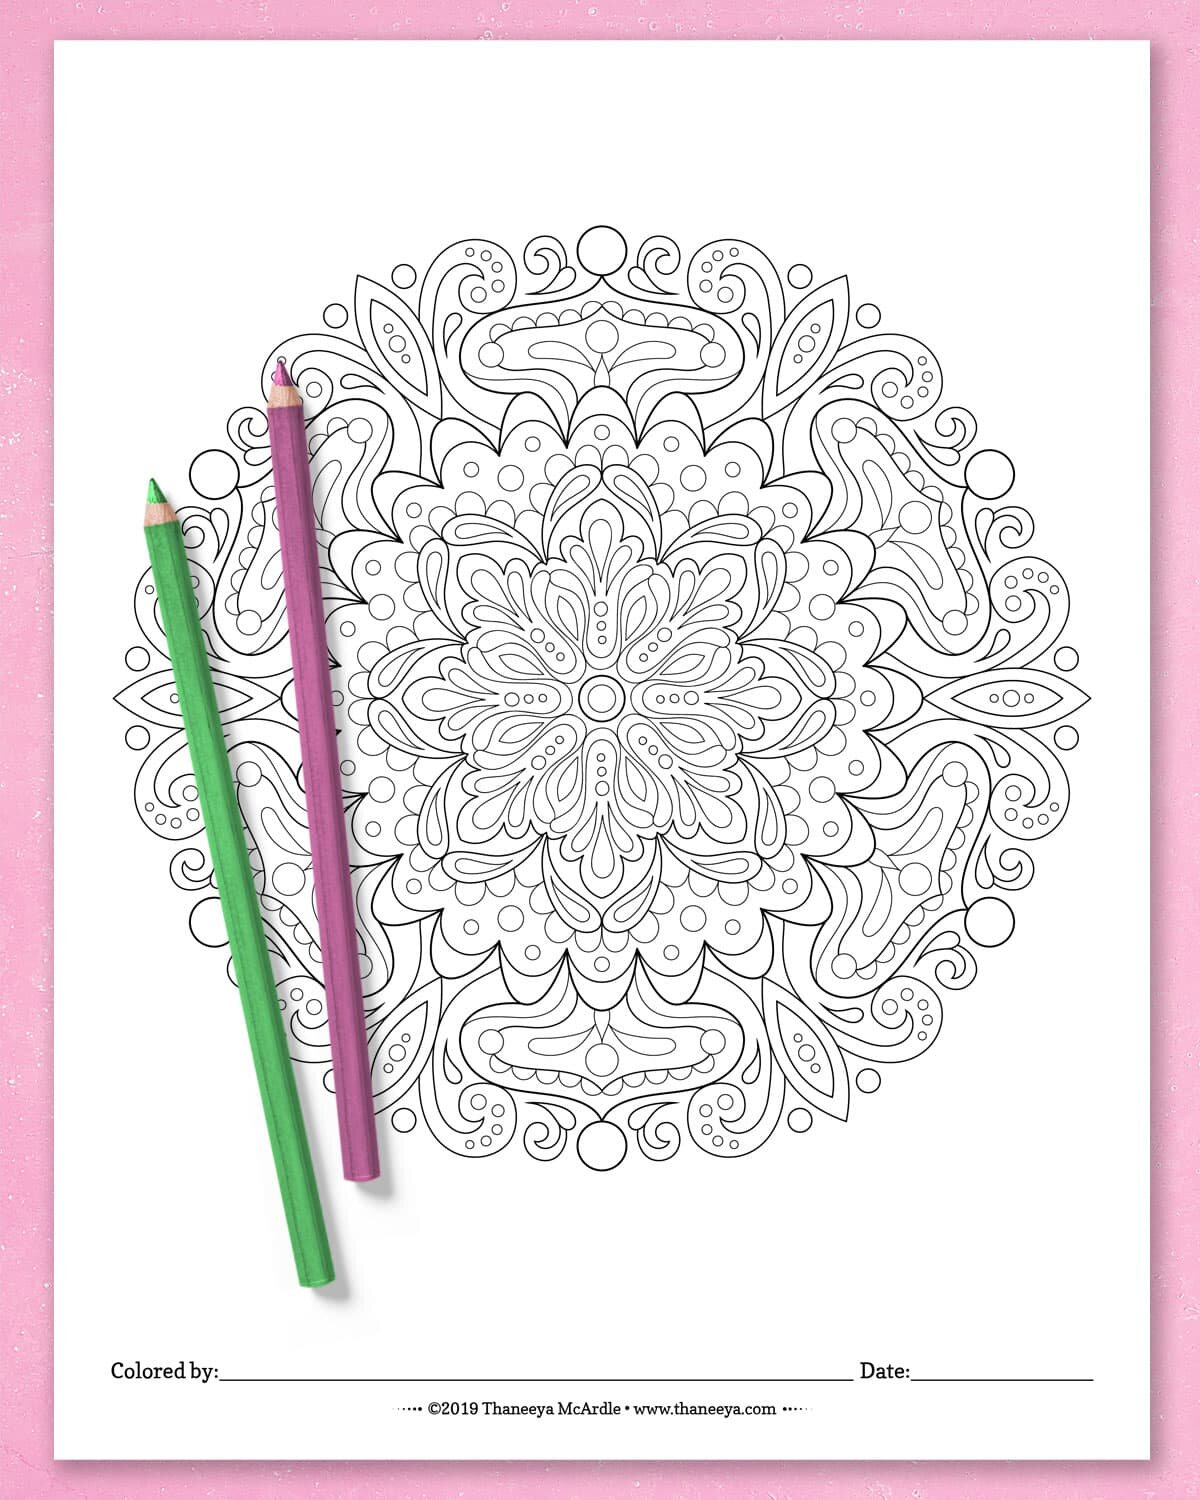 Detailed Mandala Coloring Pages By Thaneeya Mcardle Set Of 10 Printable Mandalas To Color Thaneeya Com